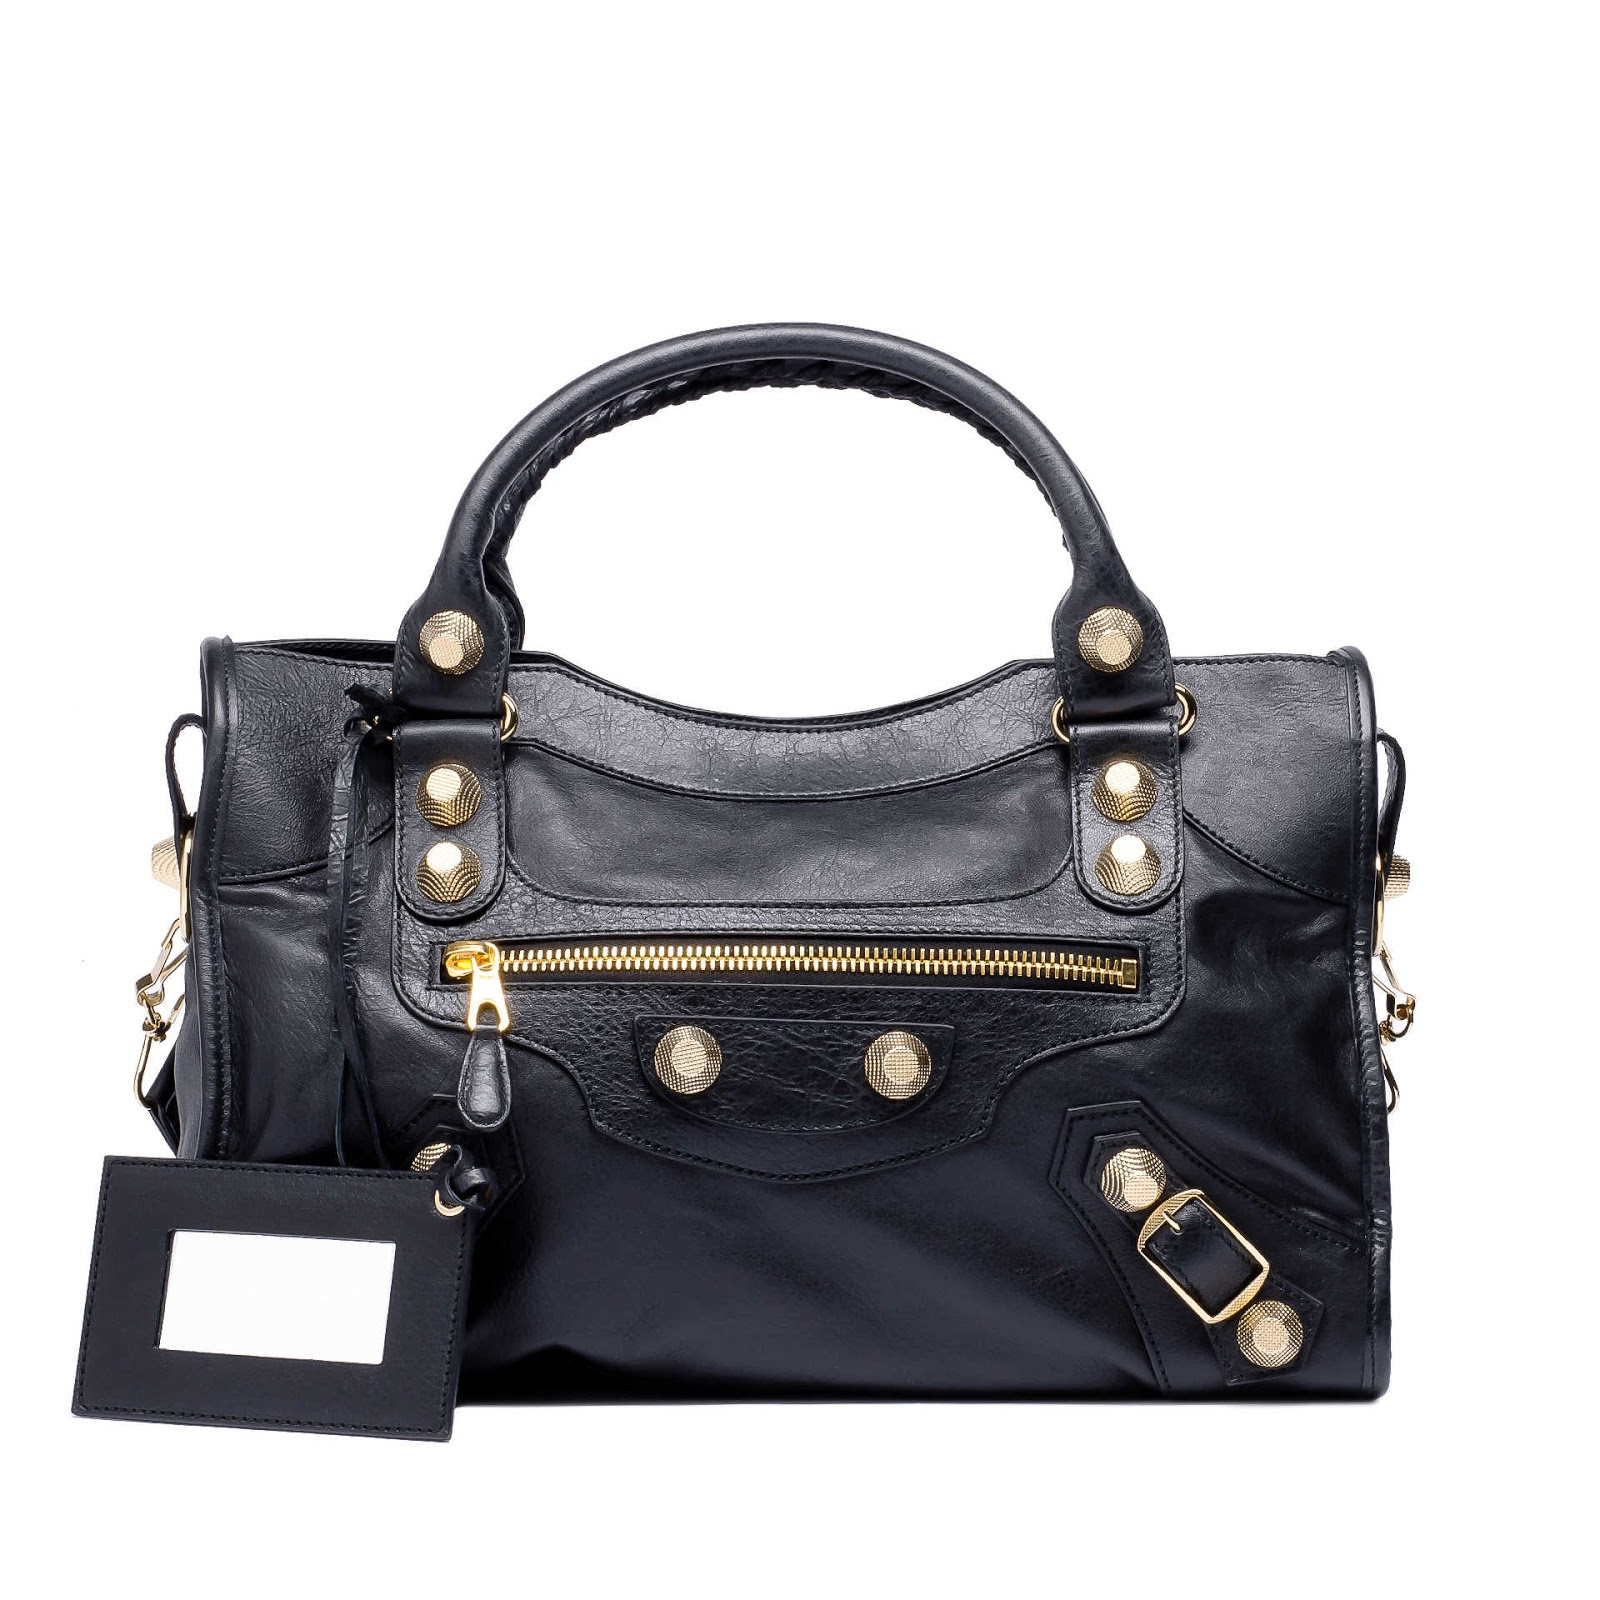 Lovebbags balenciaga limited edition gold hardware tuesday october 23 2012 voltagebd Image collections